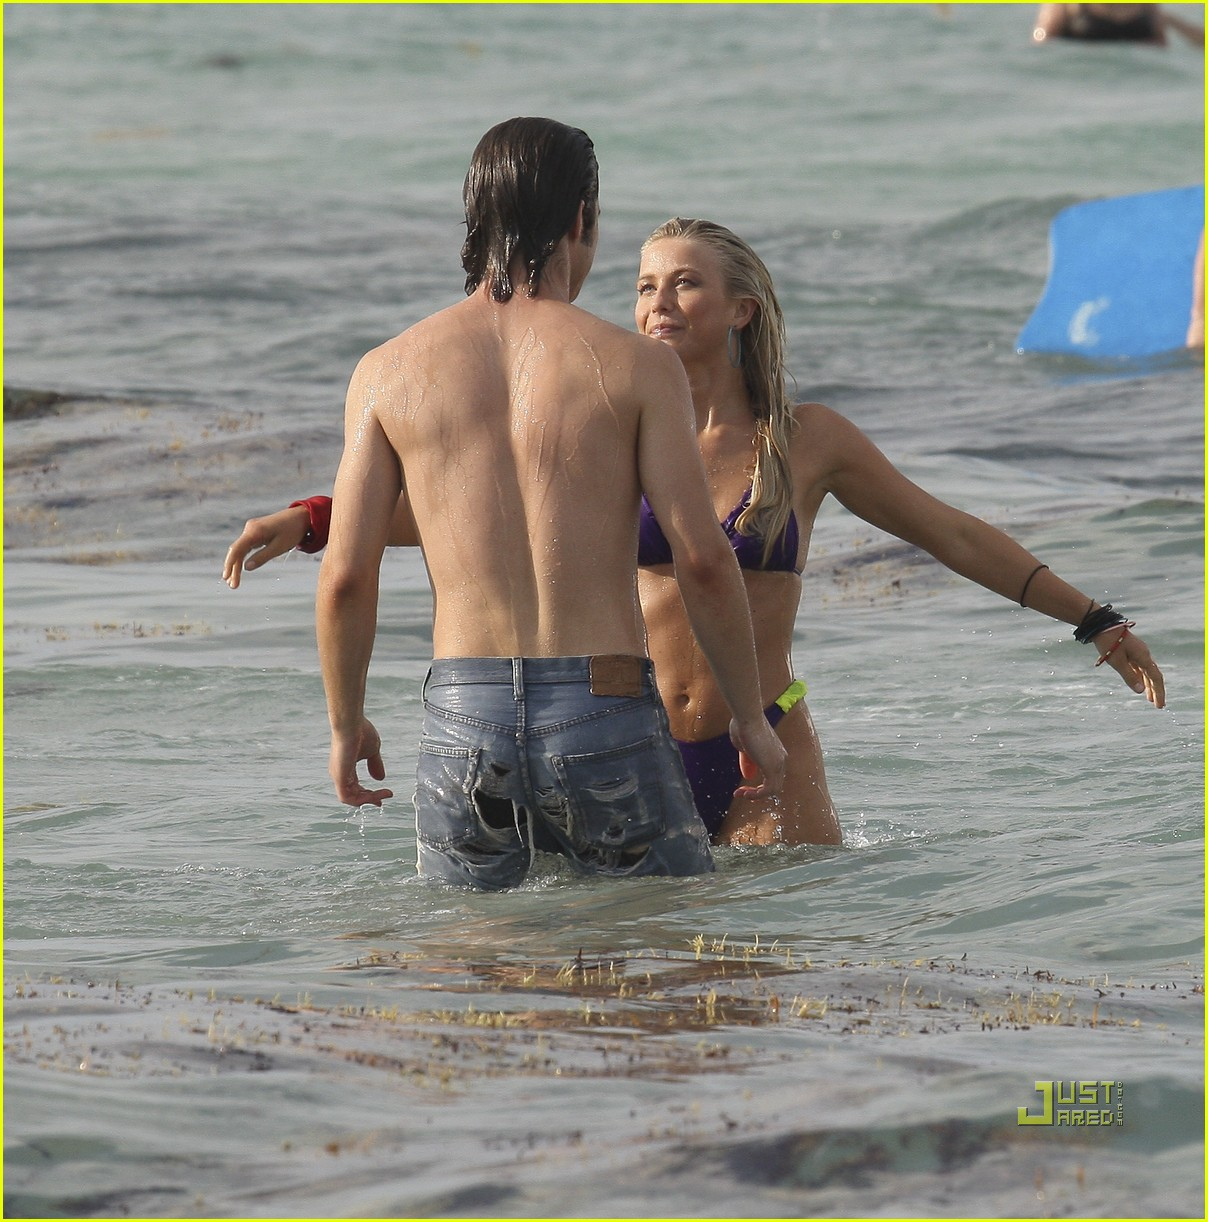 julianne hough bikini kiss diega boneta 13